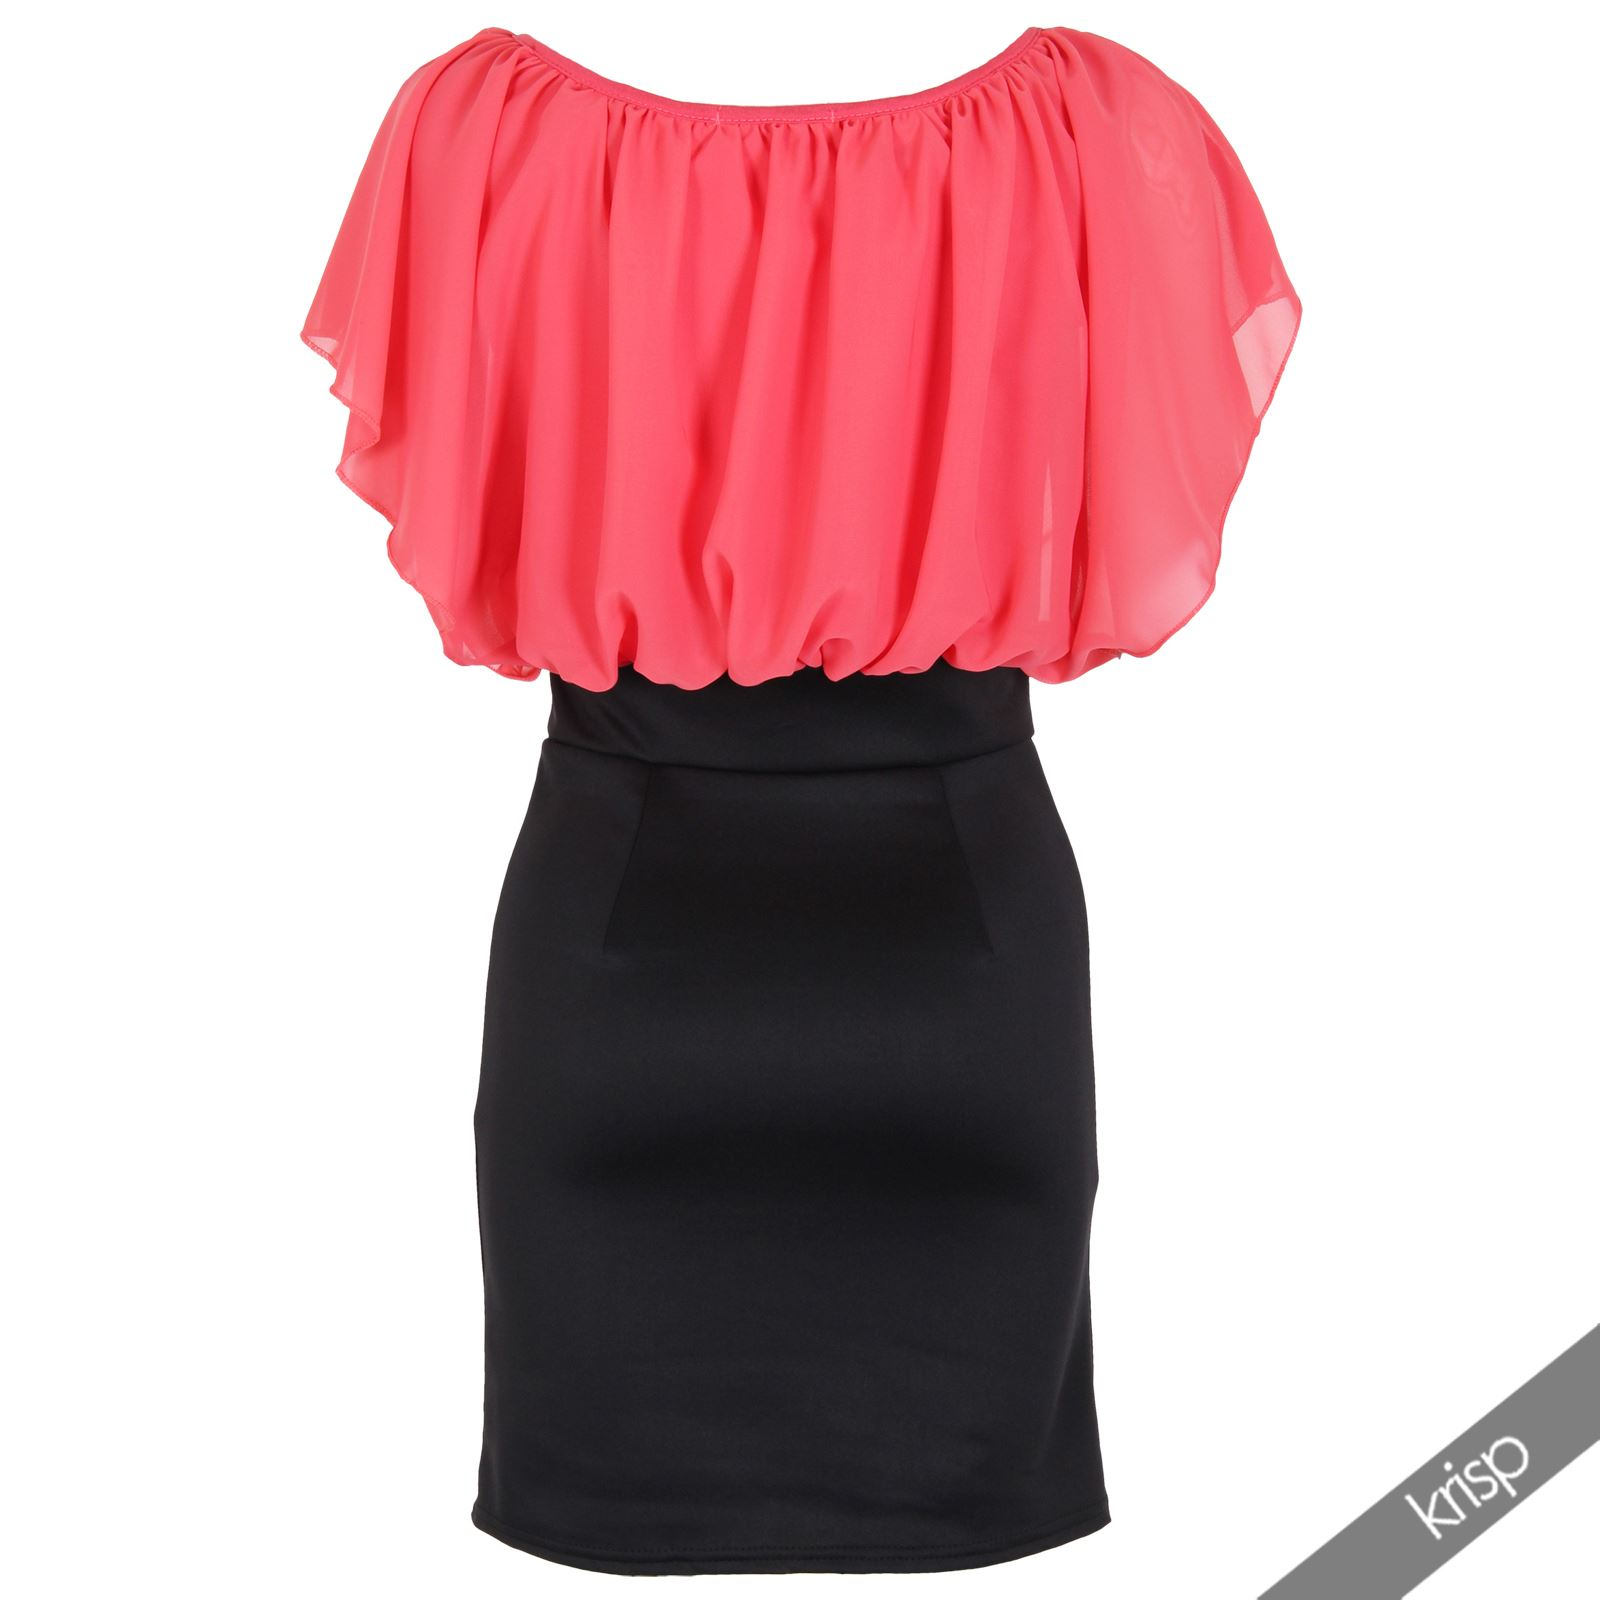 Online shopping for Clothing, Shoes & Jewelry from a great selection of Casual, Formal, Cocktail, Wedding Dresses & more at everyday low prices.